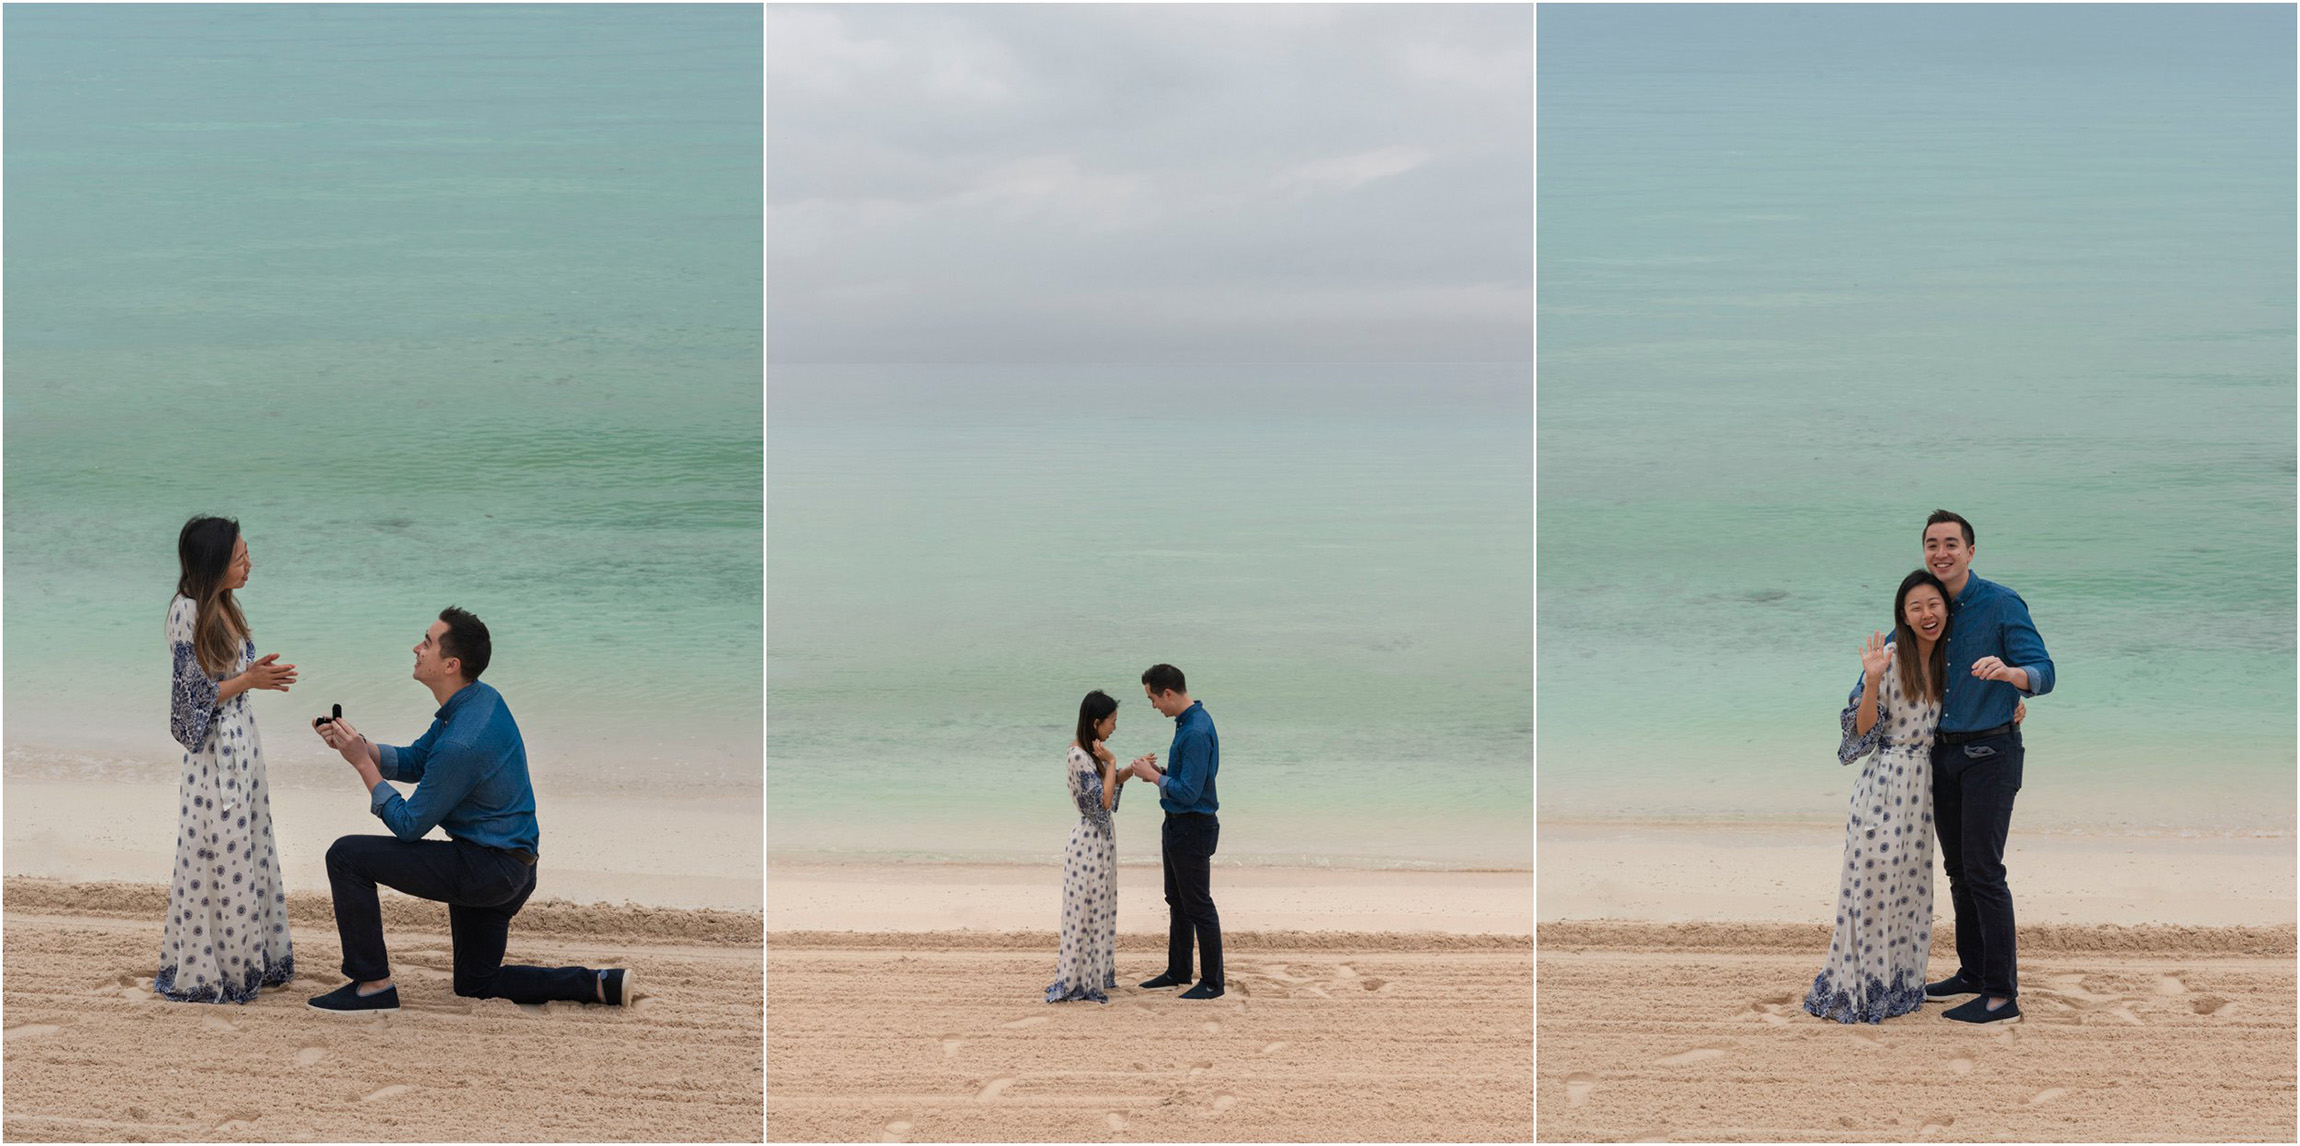 ©FianderFoto_Bermuda Proposal Photographer_002.jpg